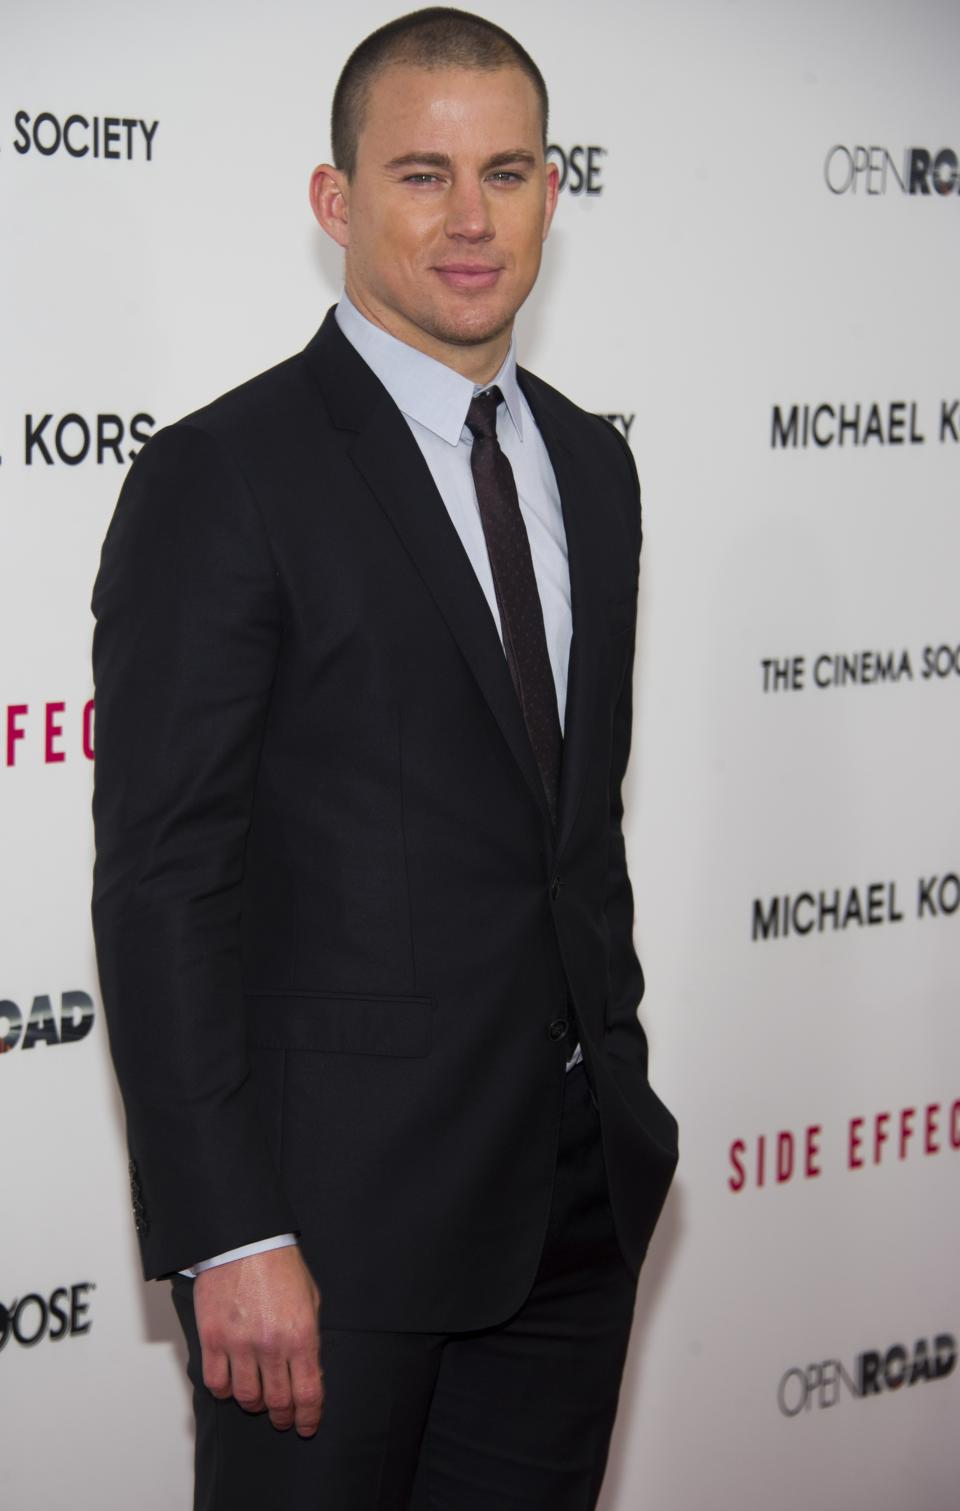 "Channing Tatum attends the premiere of ""Side Effects"" hosted by the Cinema Society and Open Road Films on Thursday, Jan. 31, 2013 in New York. (Photo by Charles Sykes/Invision/AP)"